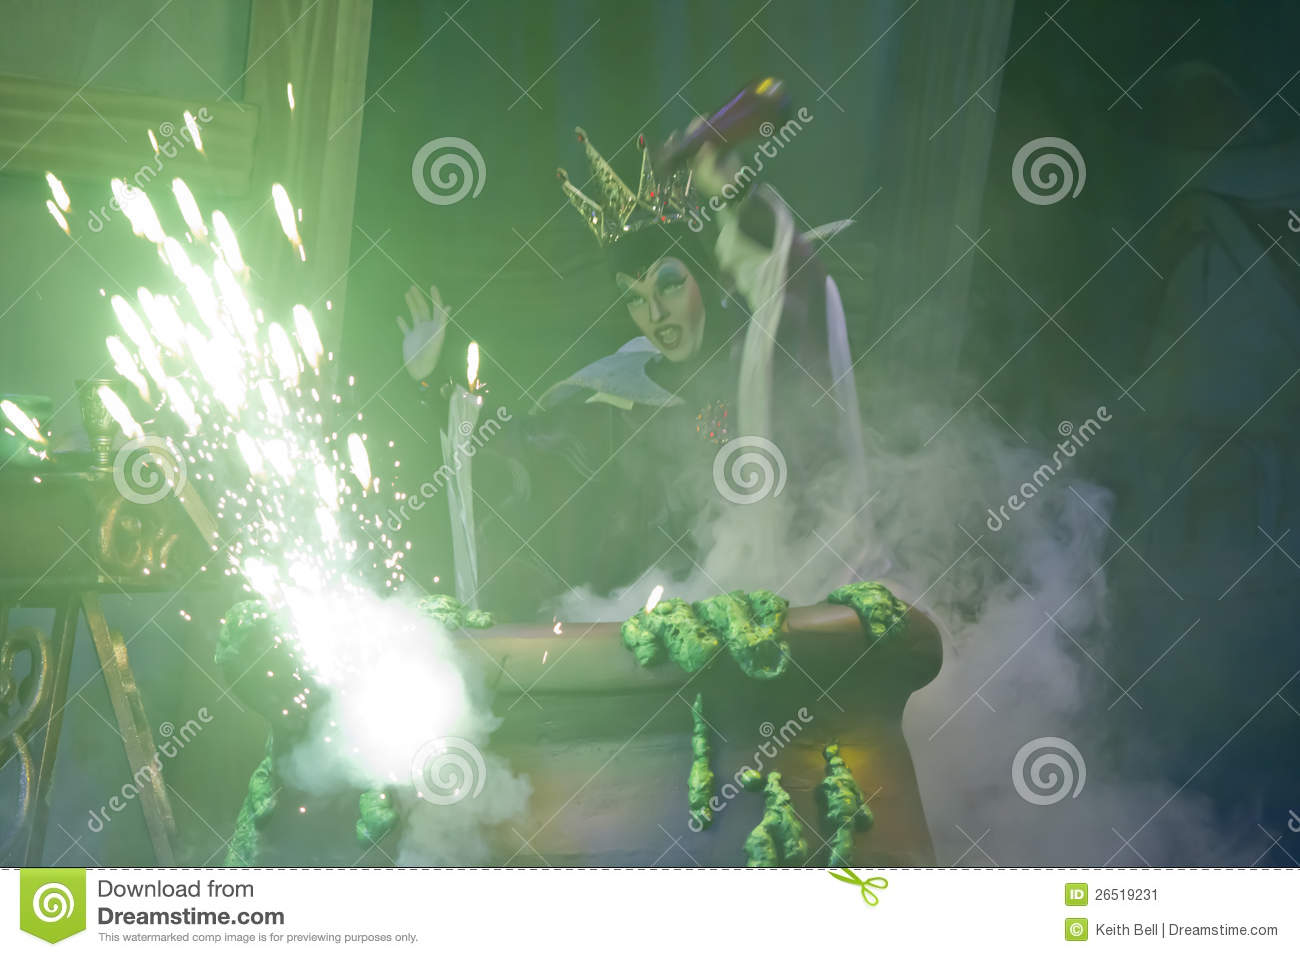 Sorceress casting spell opinion